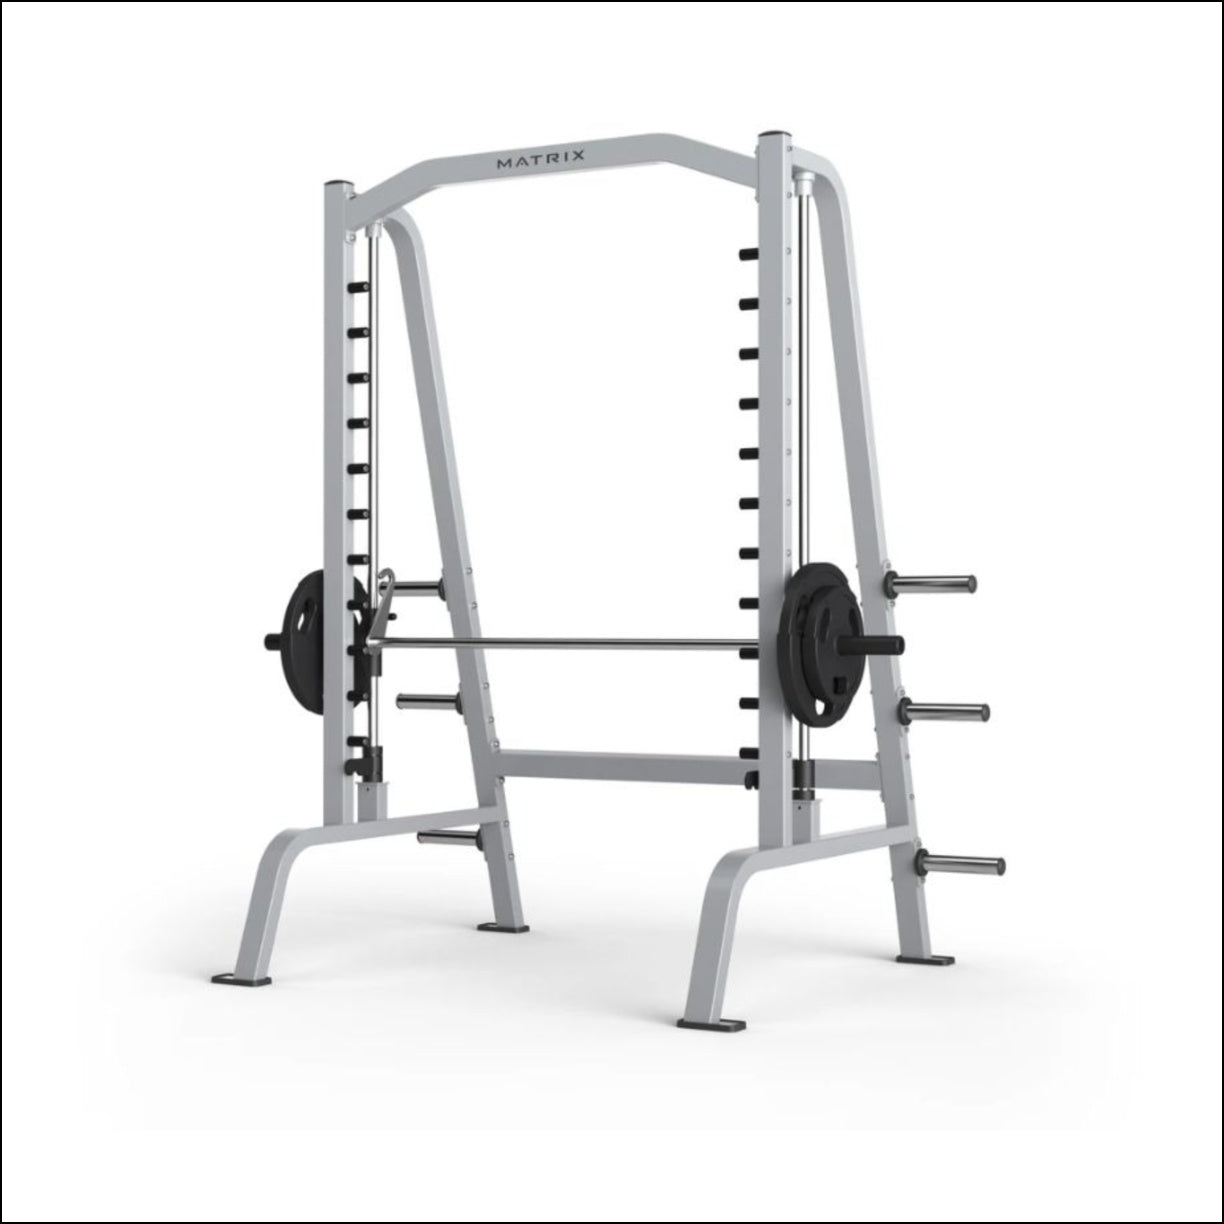 Home gym machines Australia MATRIX G1 SMITH MACHINE Low starting resistance accommodates users of all abilities Bar travel limited to 28.5 (65cm) from the floor to improve safety Six integrated weight storage horns